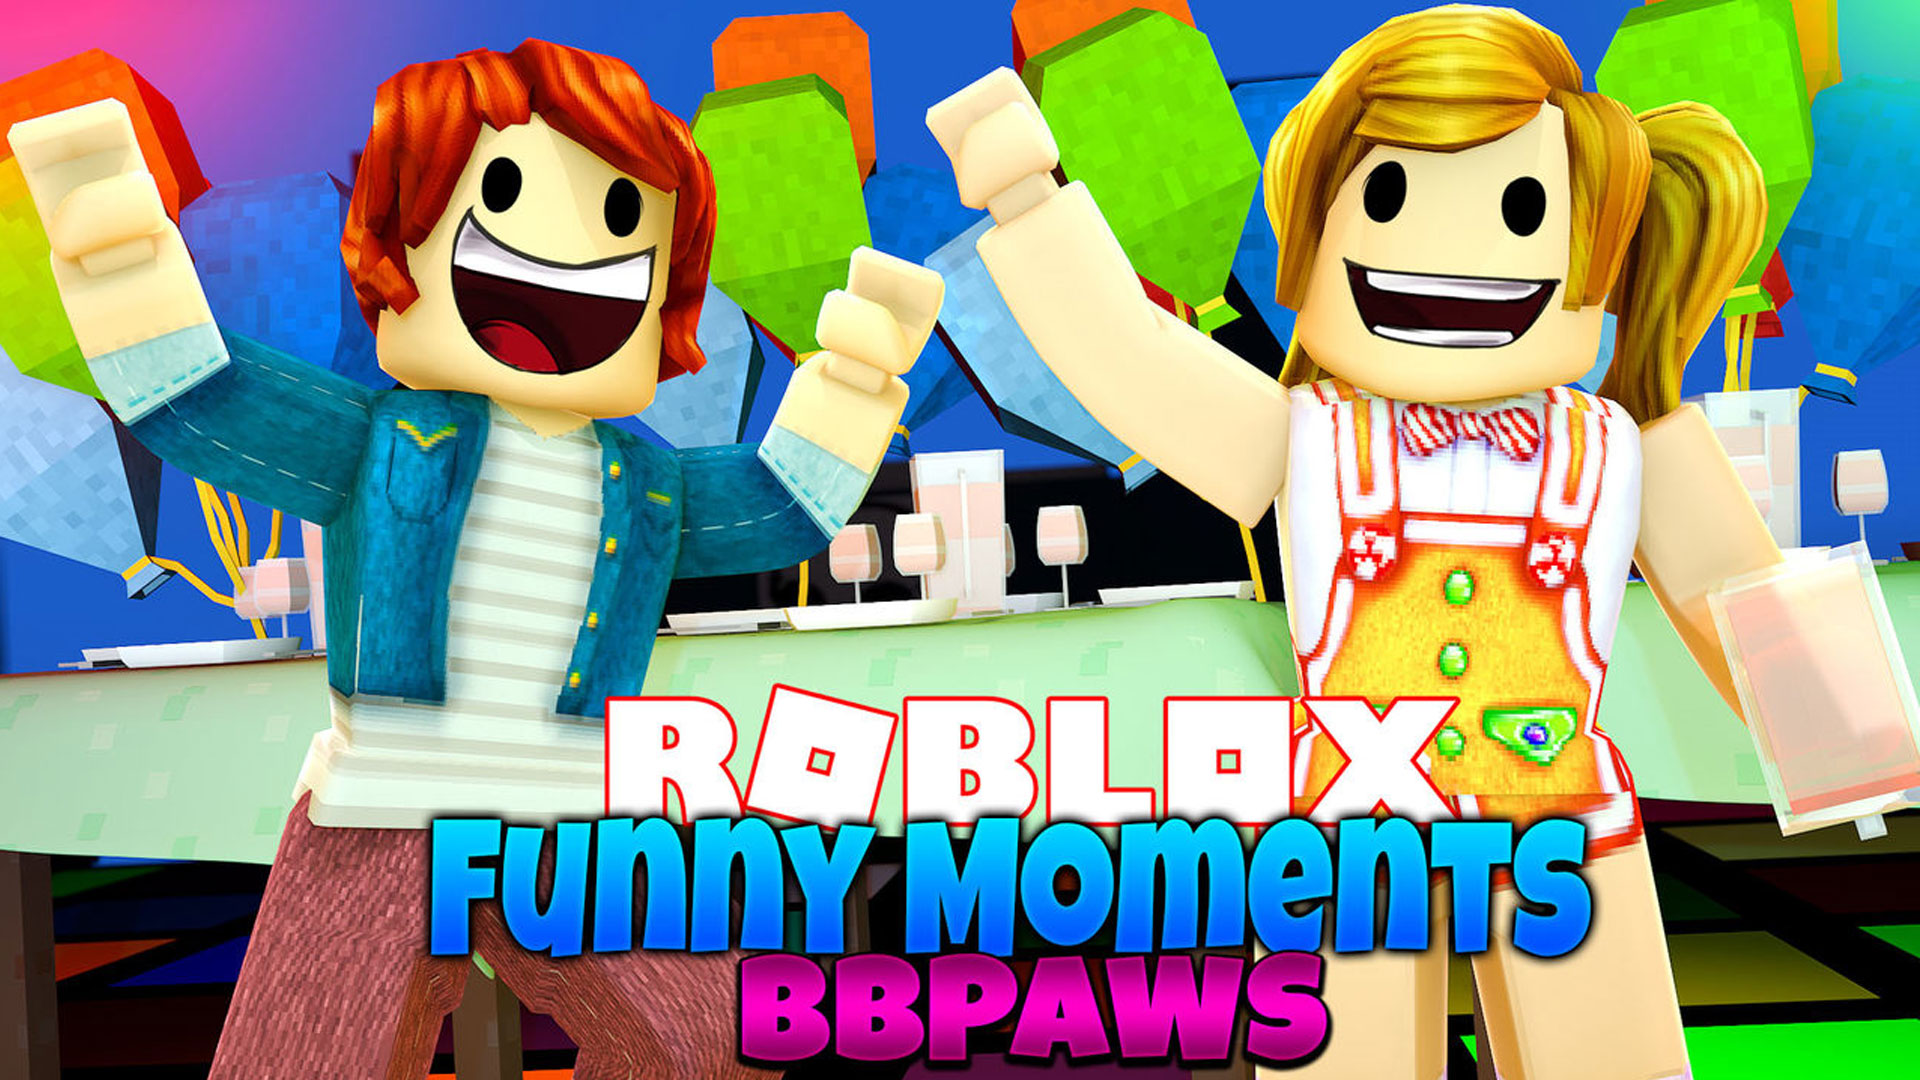 Watch Clip Roblox Funny Moments Phoenixgg2 Prime Video - roblox anime cross 2 hack money ashleyosity roblox flee